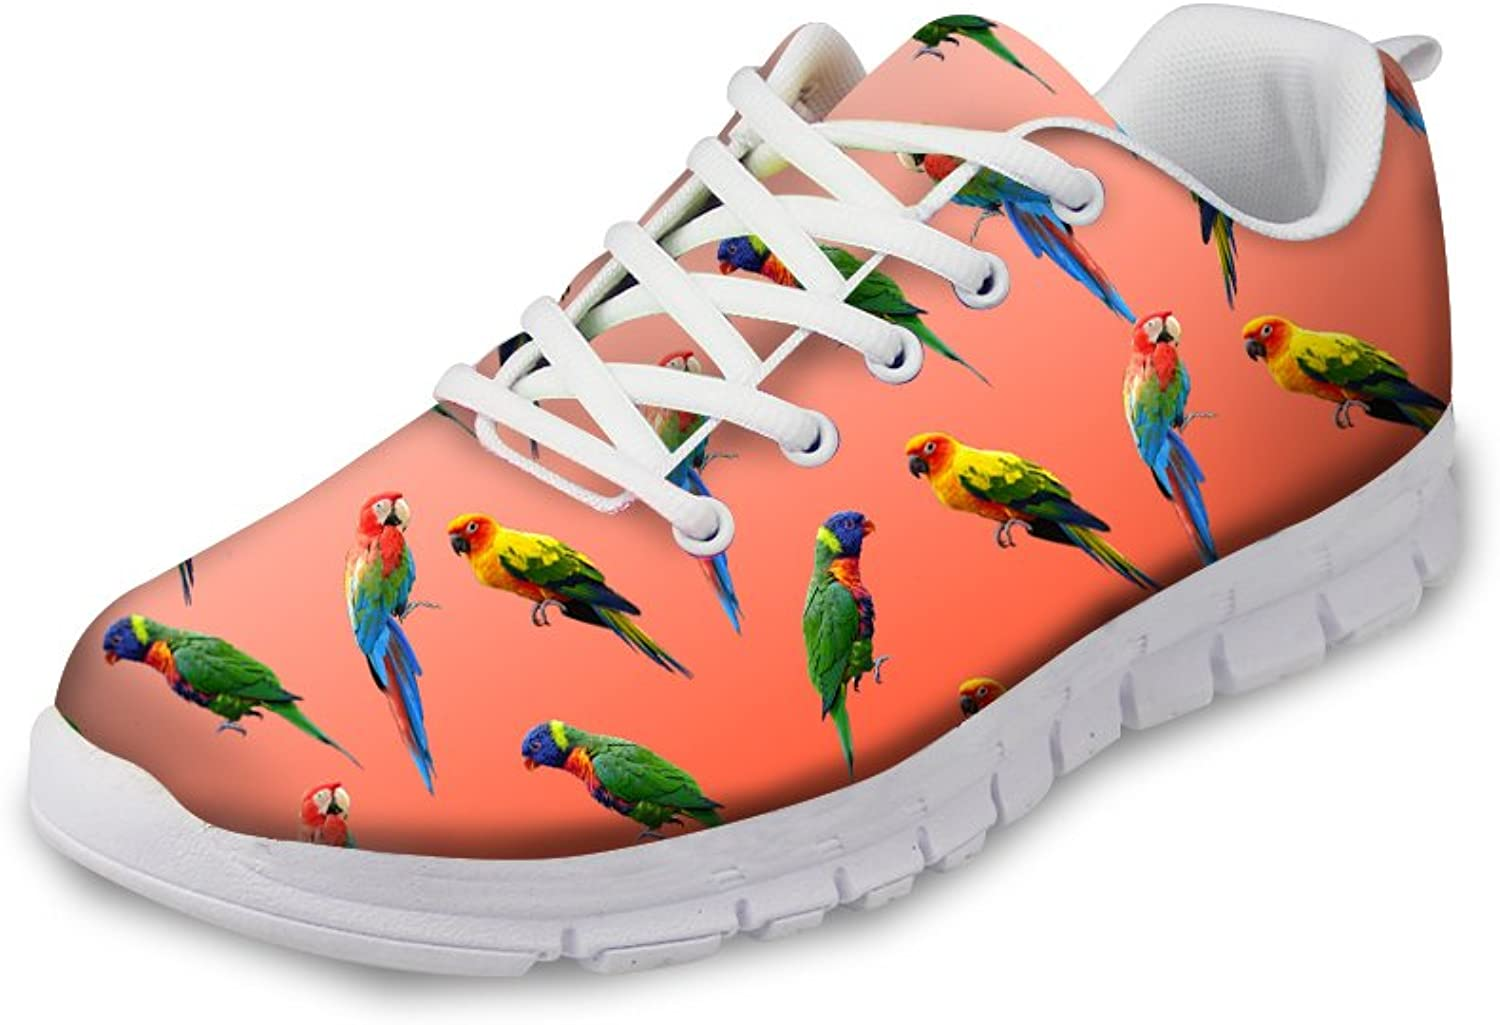 Bigcardesigns Fashion Parred Print Running shoes Lace-ups Sneakers Women Ladies Casual Breathable Trainers Lightweight Sport shoes